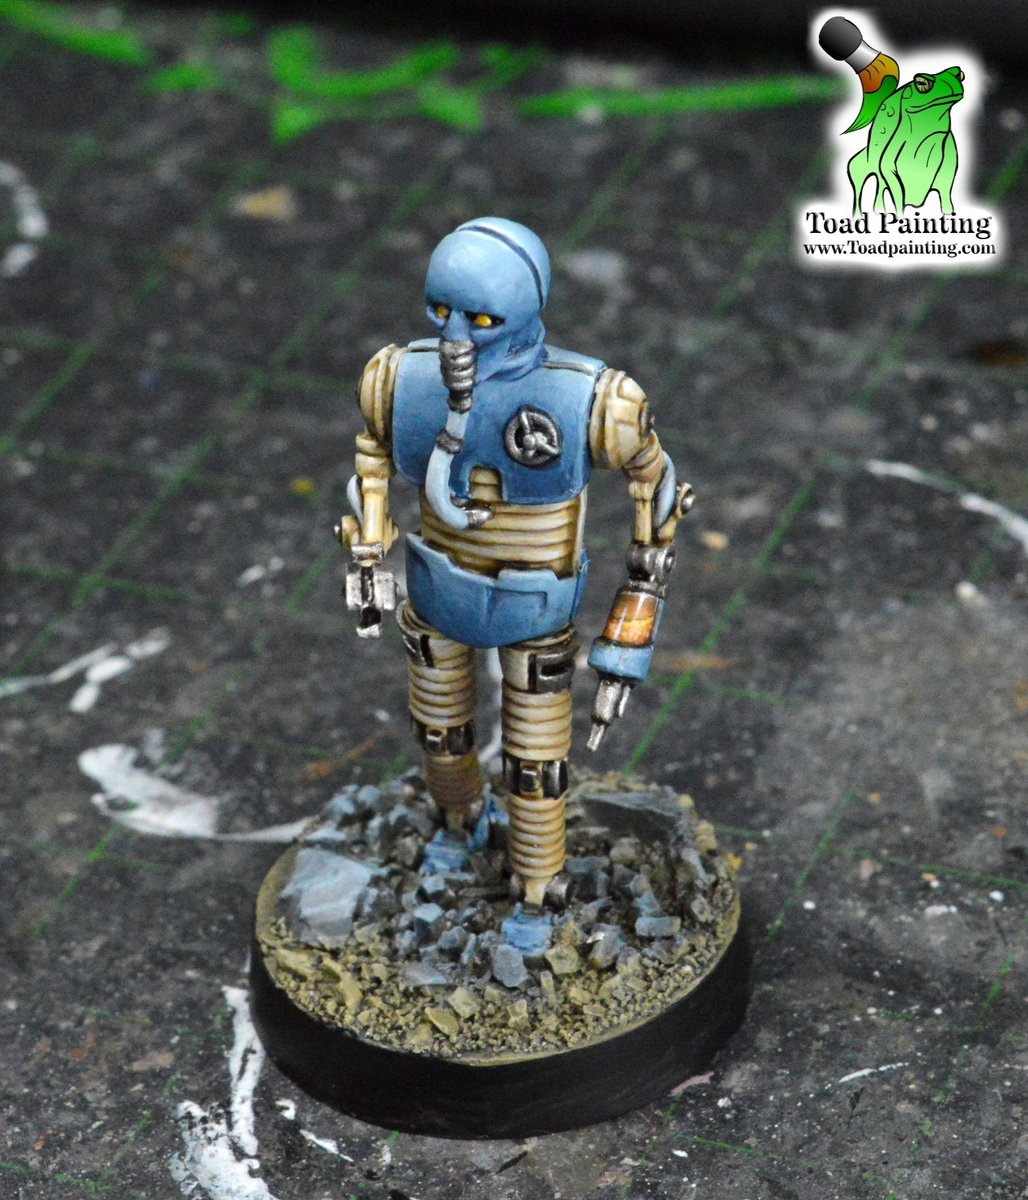 WIP of a Droid Specialist from Star Wars Legion by Fantasy Flight Games. Playing around with the canister on the needle arm, tried to make it look like ginger ale.  #minipainting #miniaturepainting #miniatures #StarWars  #starwarslegion https://t.co/elcjc5re93